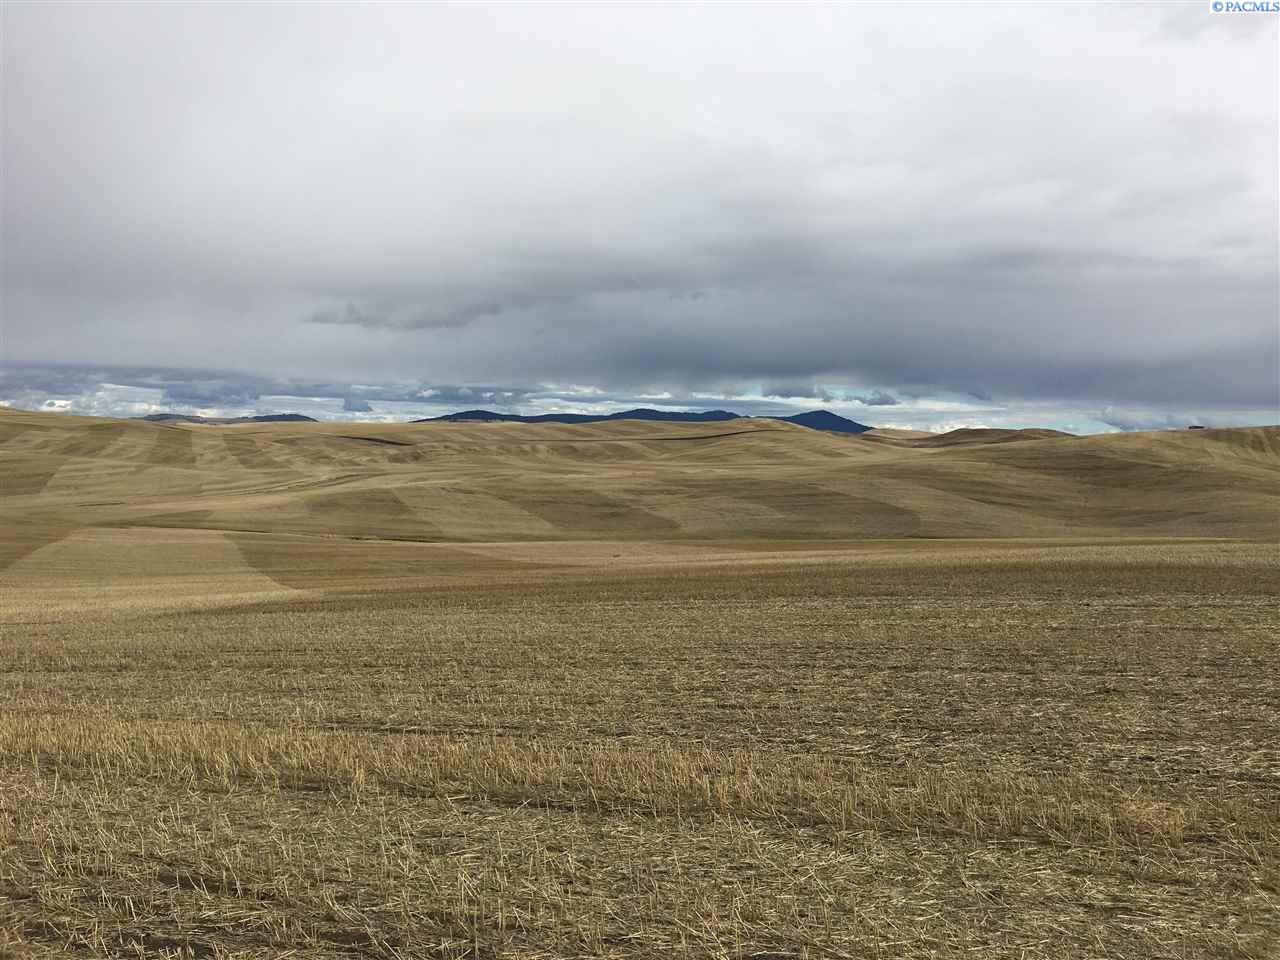 Land / Lots for Sale at Tbd O'Donnell Road Tbd O'Donnell Road Pullman, Washington 99163 United States